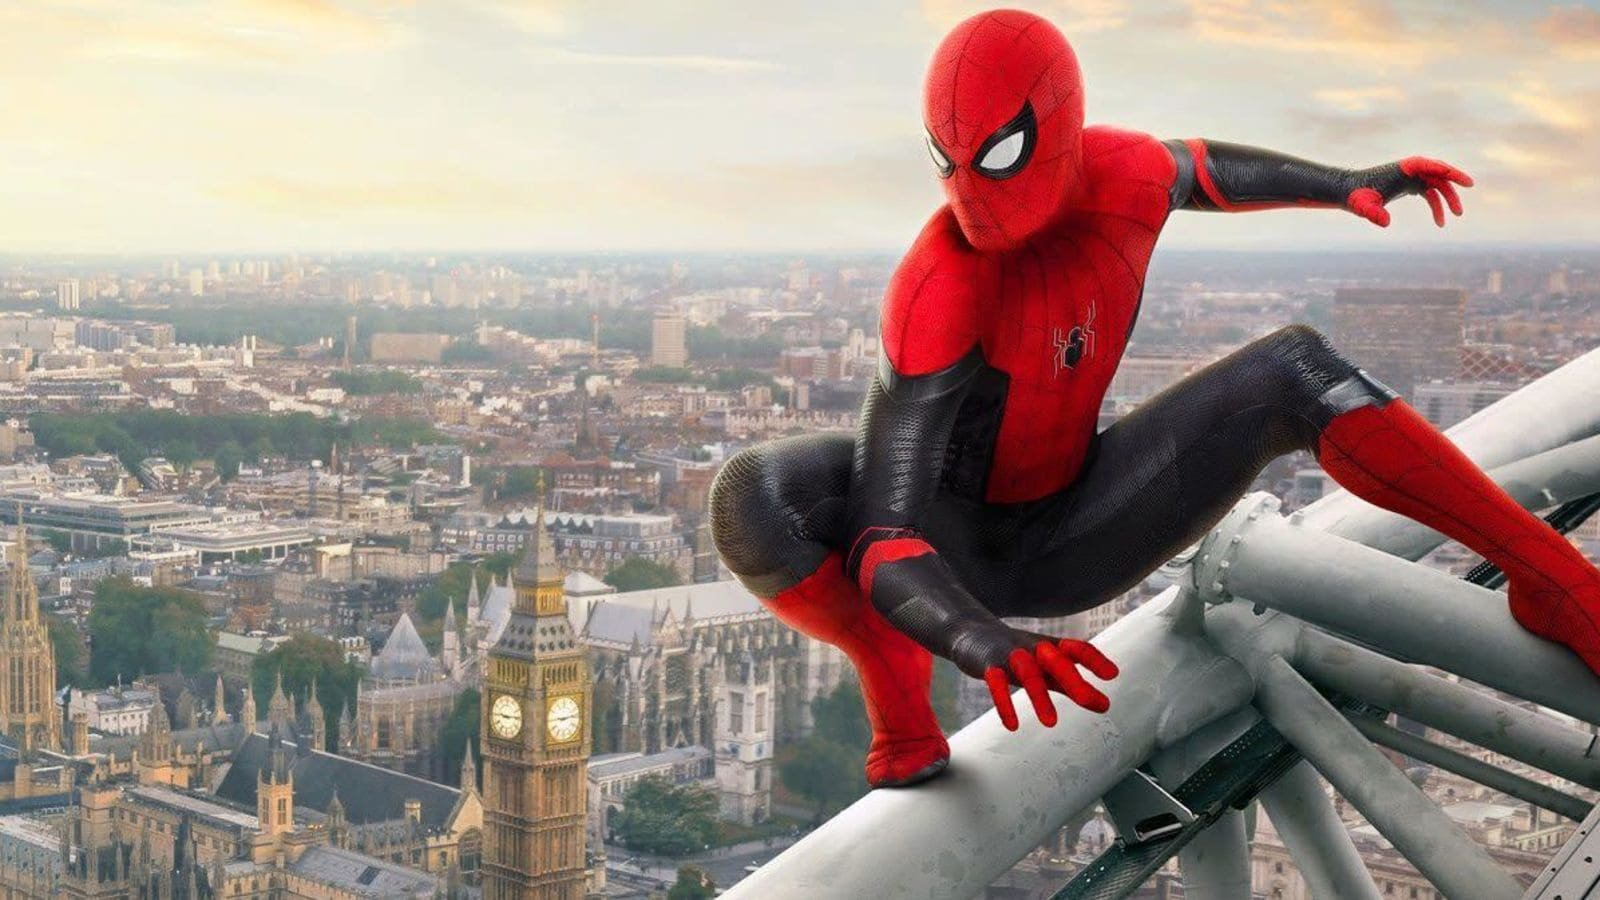 Sony Pictures Chief Confirms Spider-Man Has Left The MCU